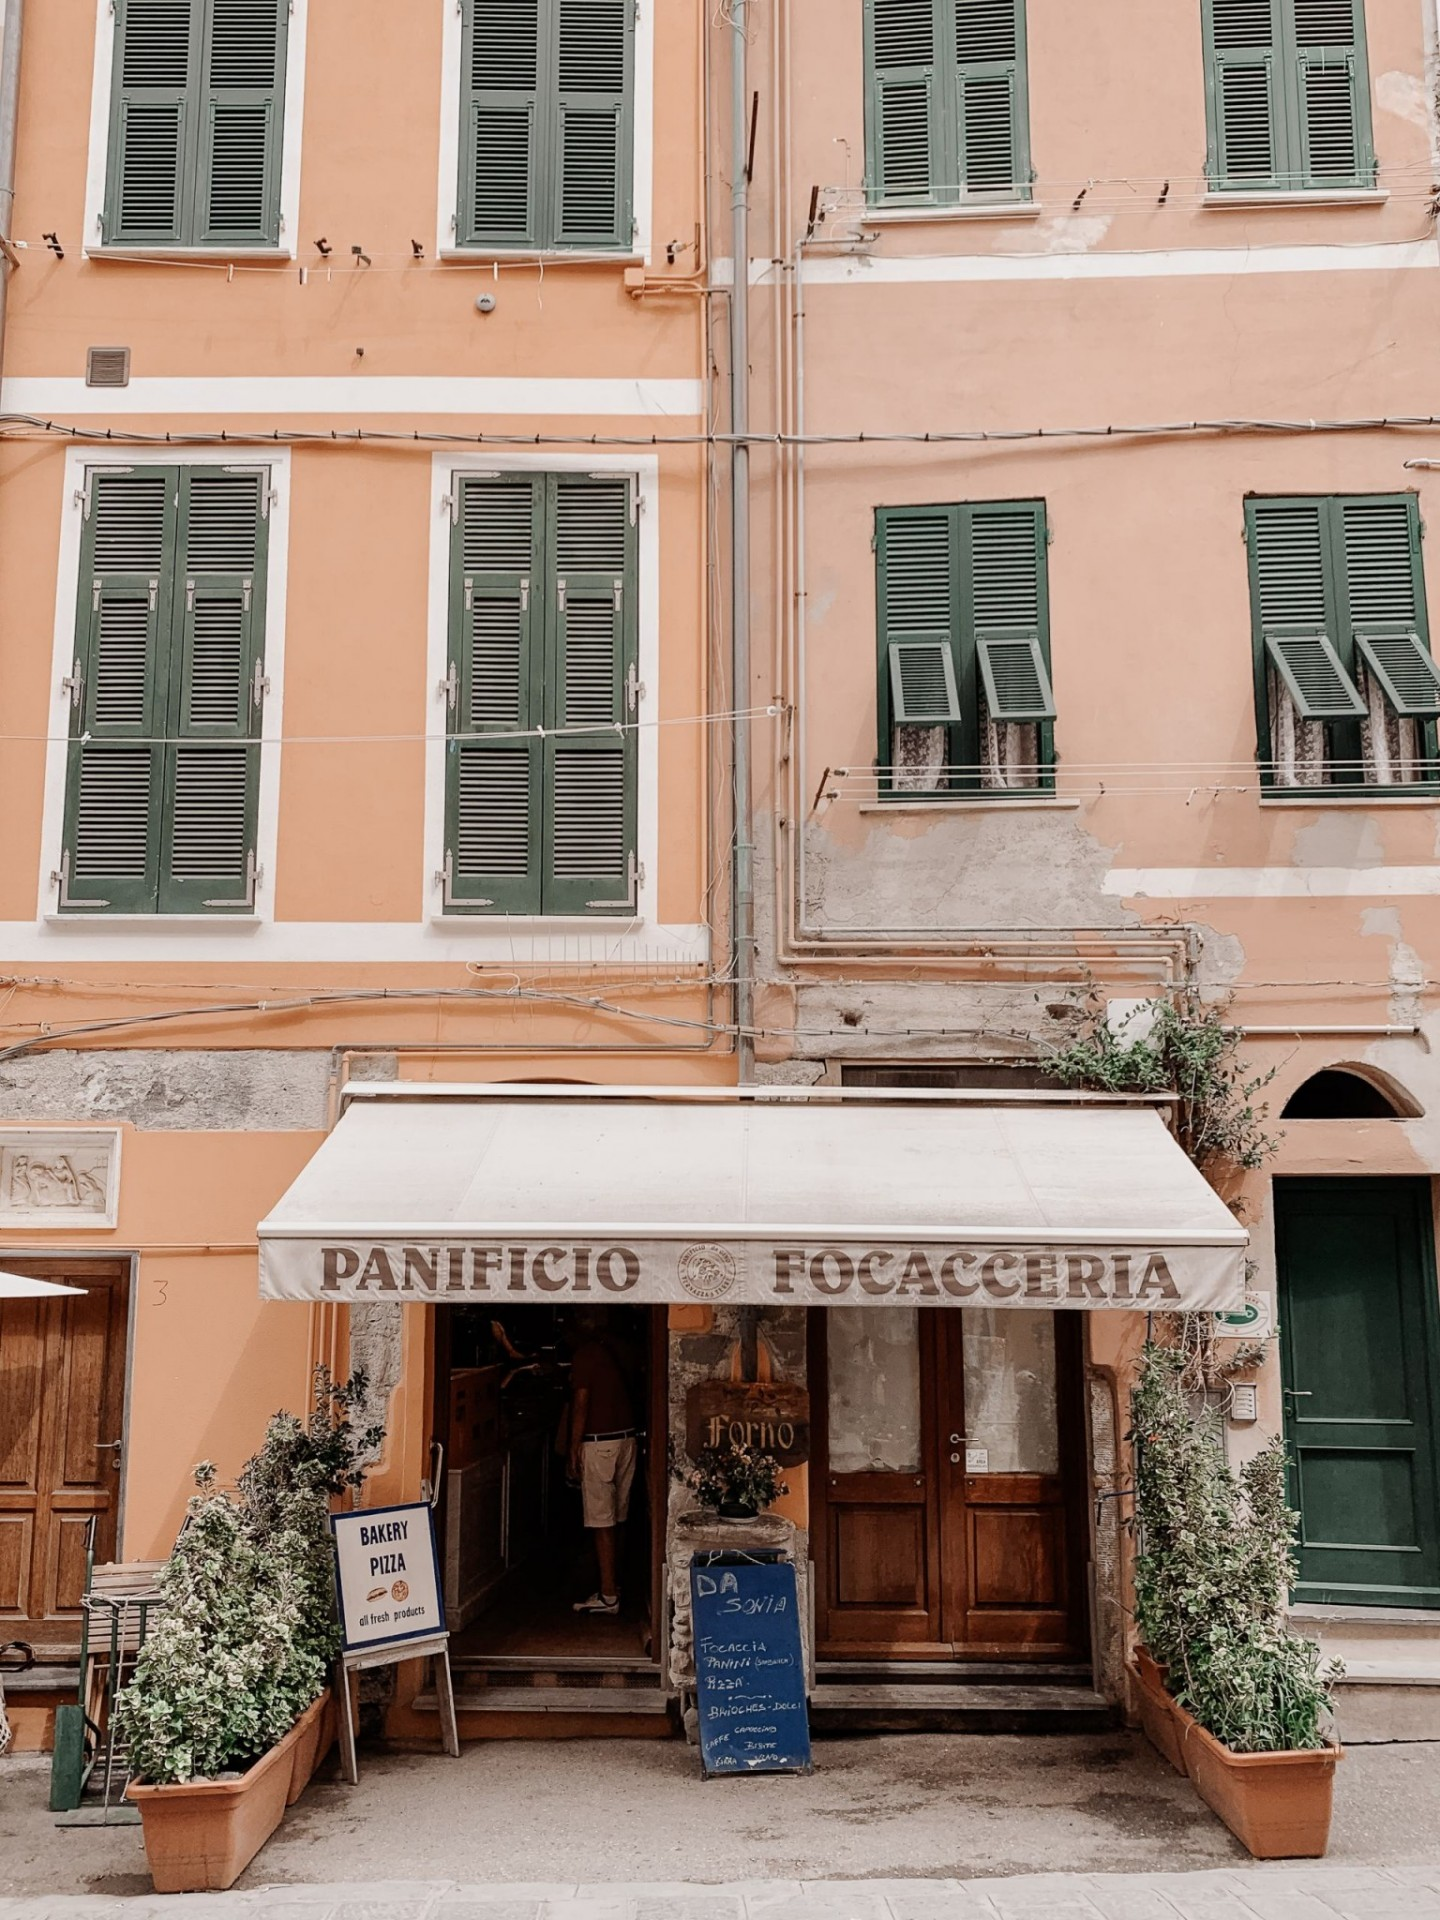 Lifestyle blogger Mollie Moore shares a Cinque Terre travel guide | Travel Guide: Things to do in Cinque Terre, Italy by popular London travel blogger, Mollie Moore: image of Panificio Focacceria in Cinque Terre, Italy.